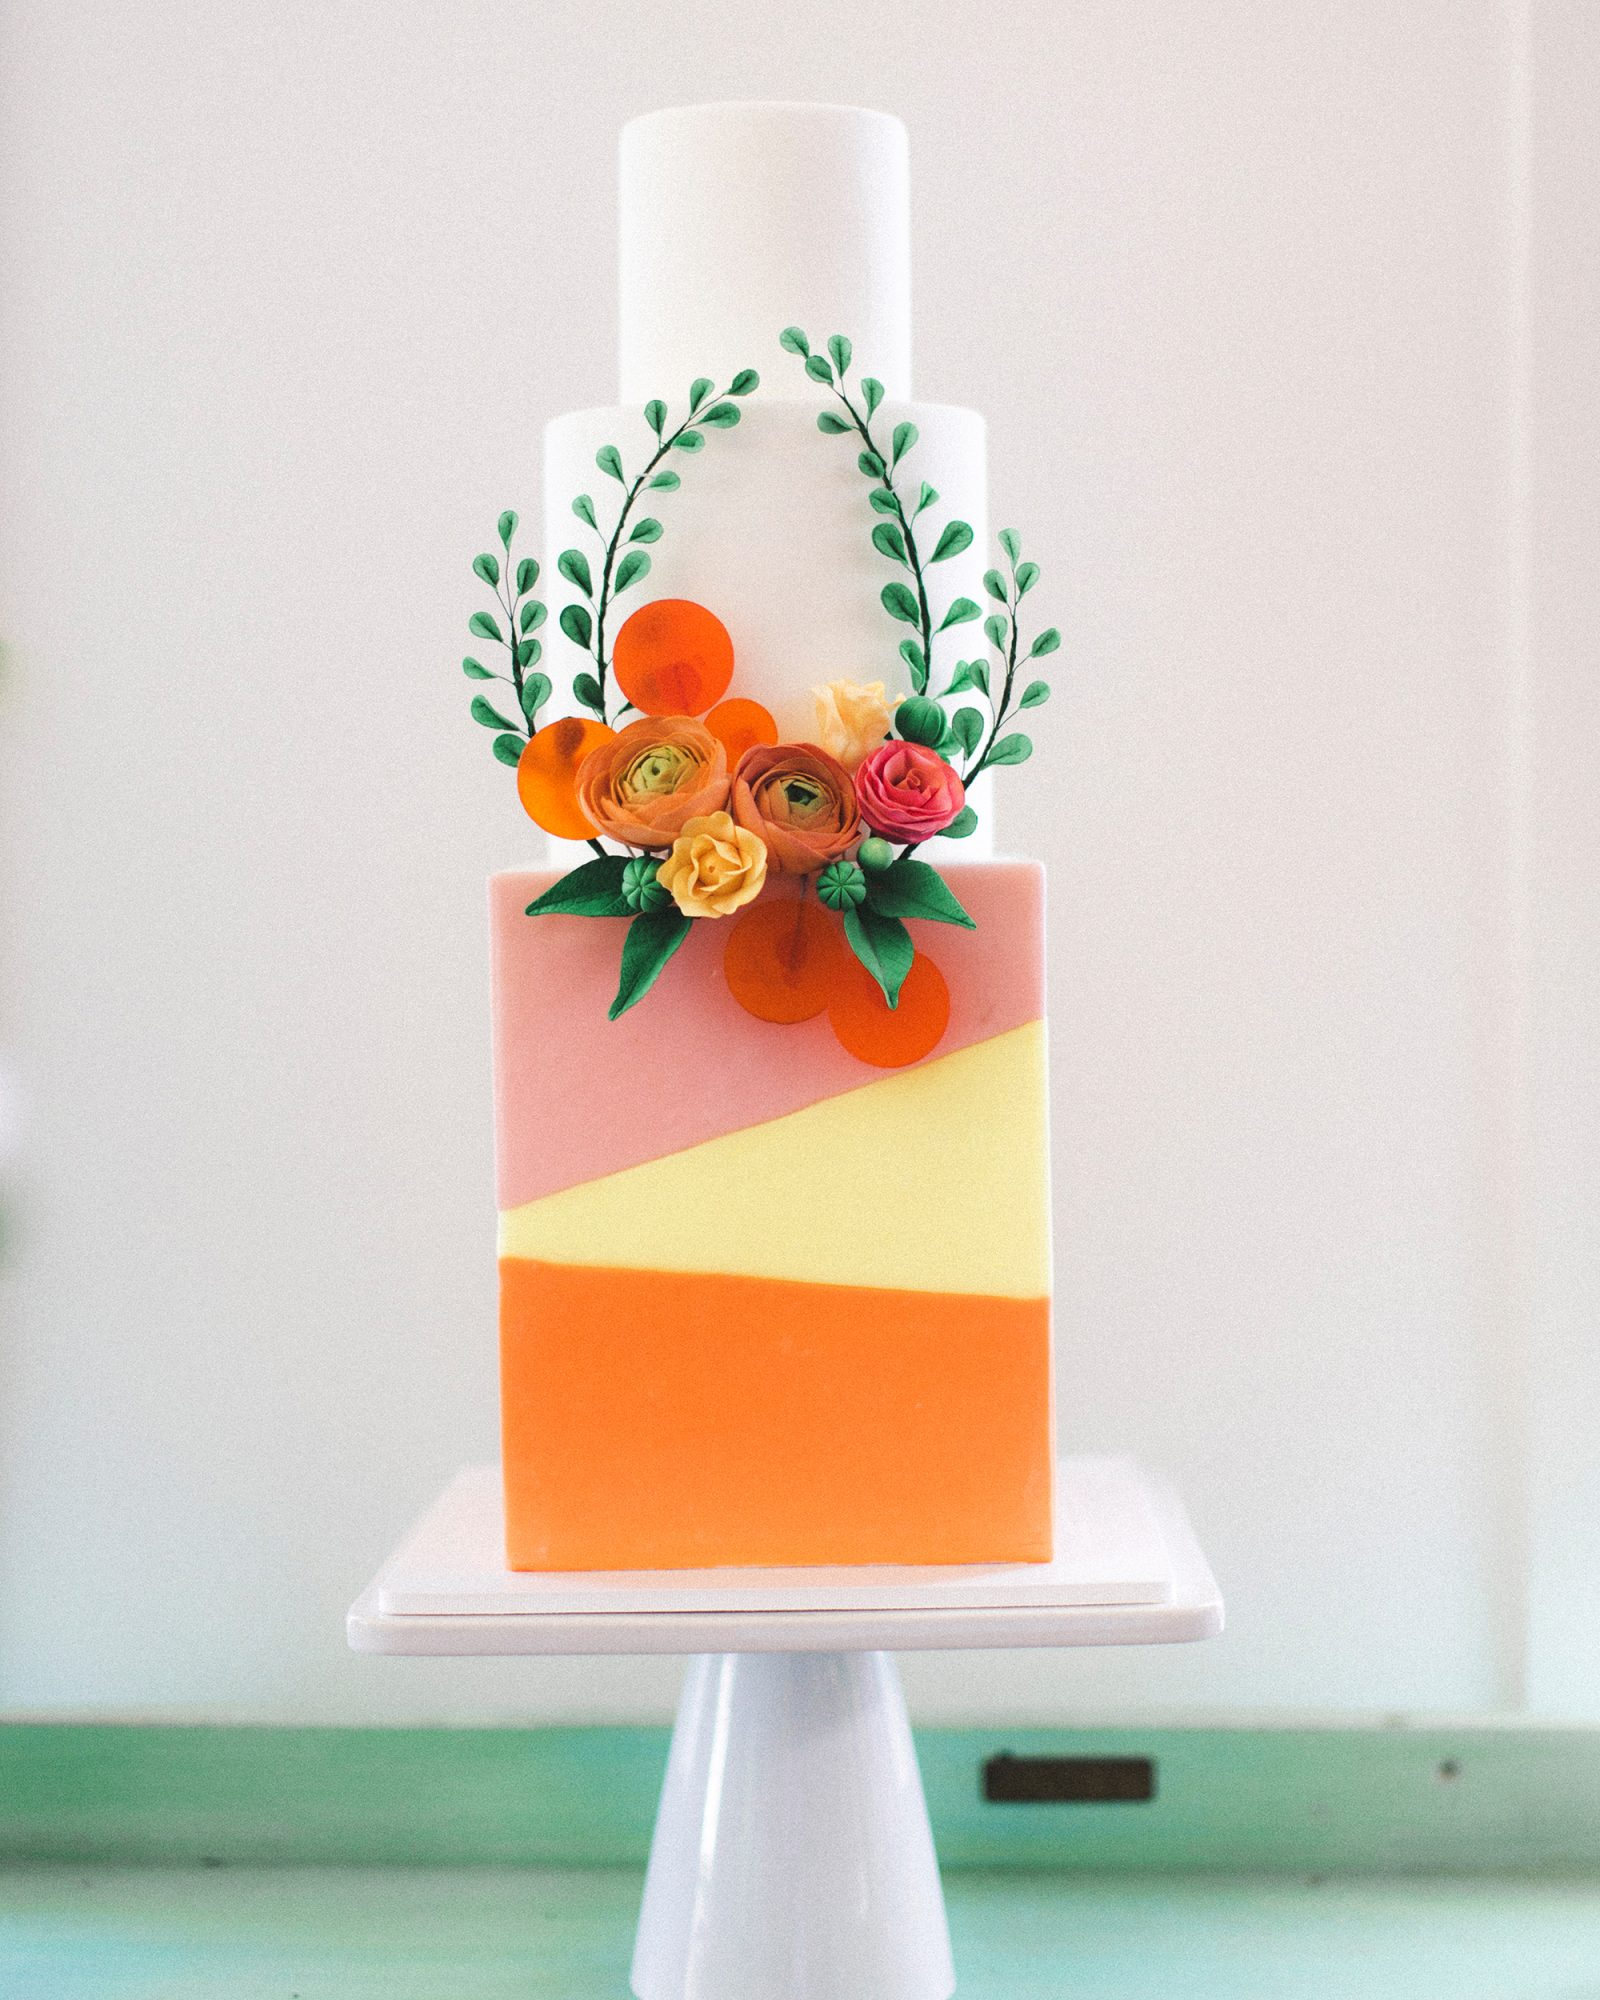 cubed wedding colorful cake